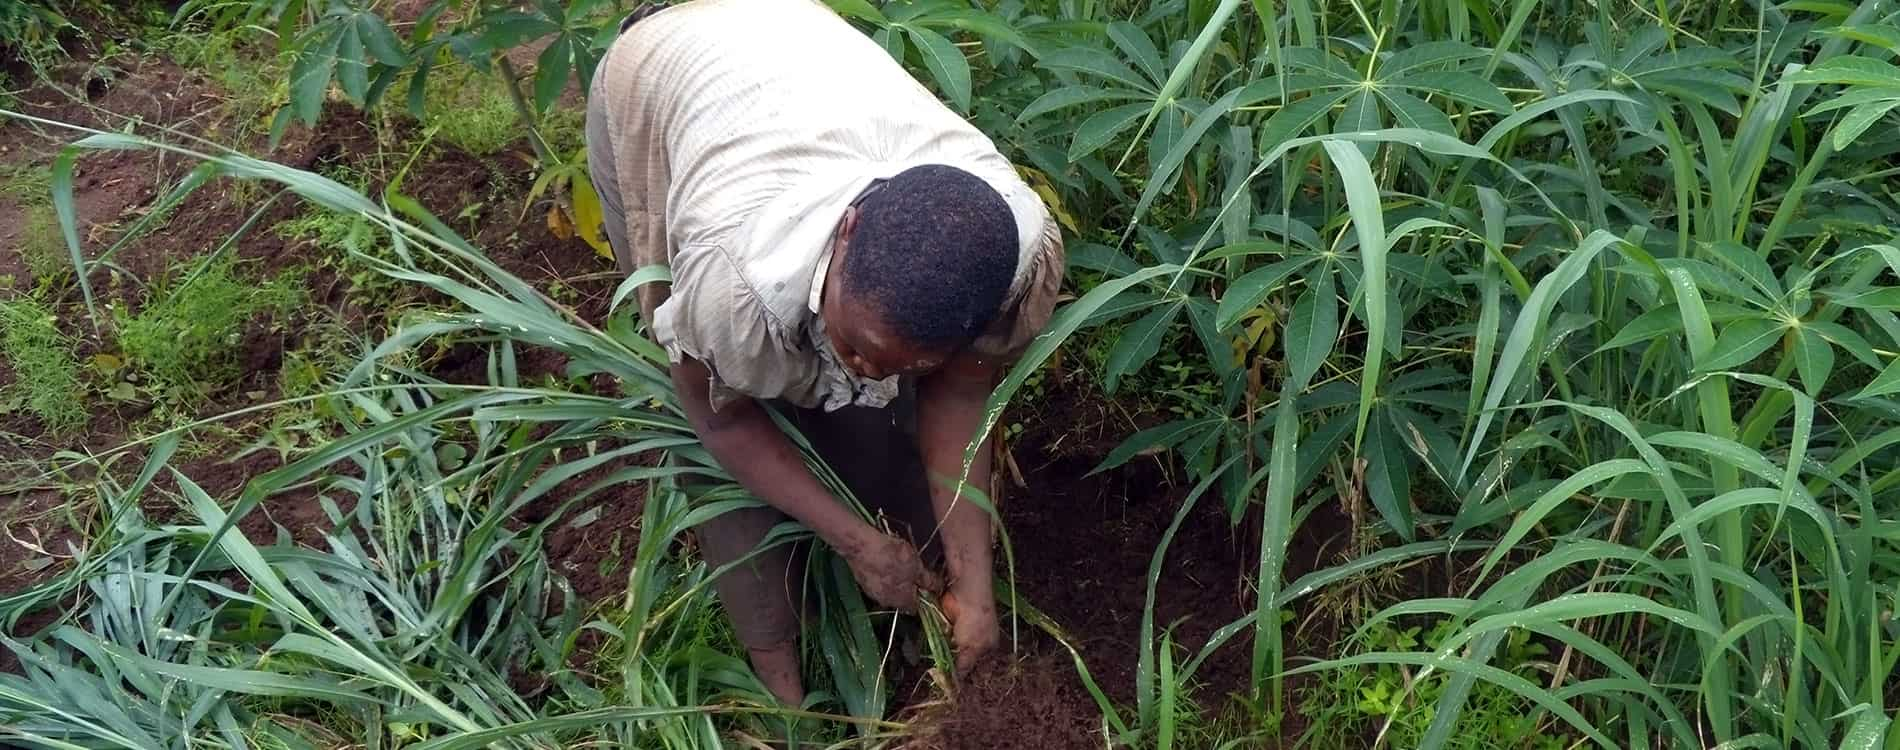 Manual weeding is labour intensive and cumbersome which causes farmers to delay weeding their cassava fields. Weeds account for over 30% in yeild loss